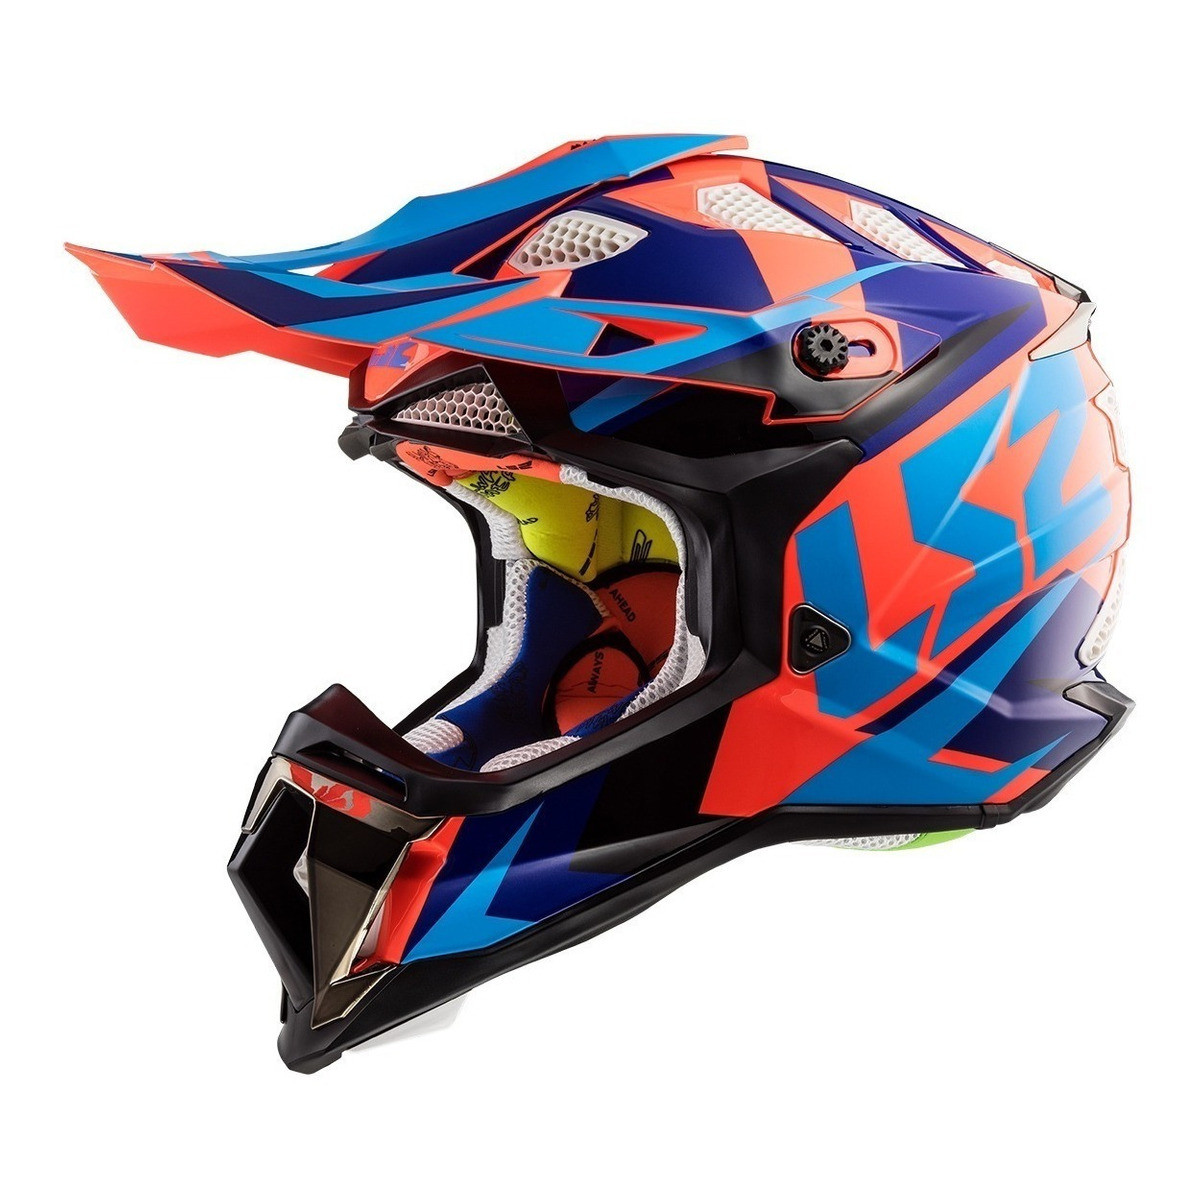 Casco Cross LS2 MX 470 Subverter Nimble Naranja